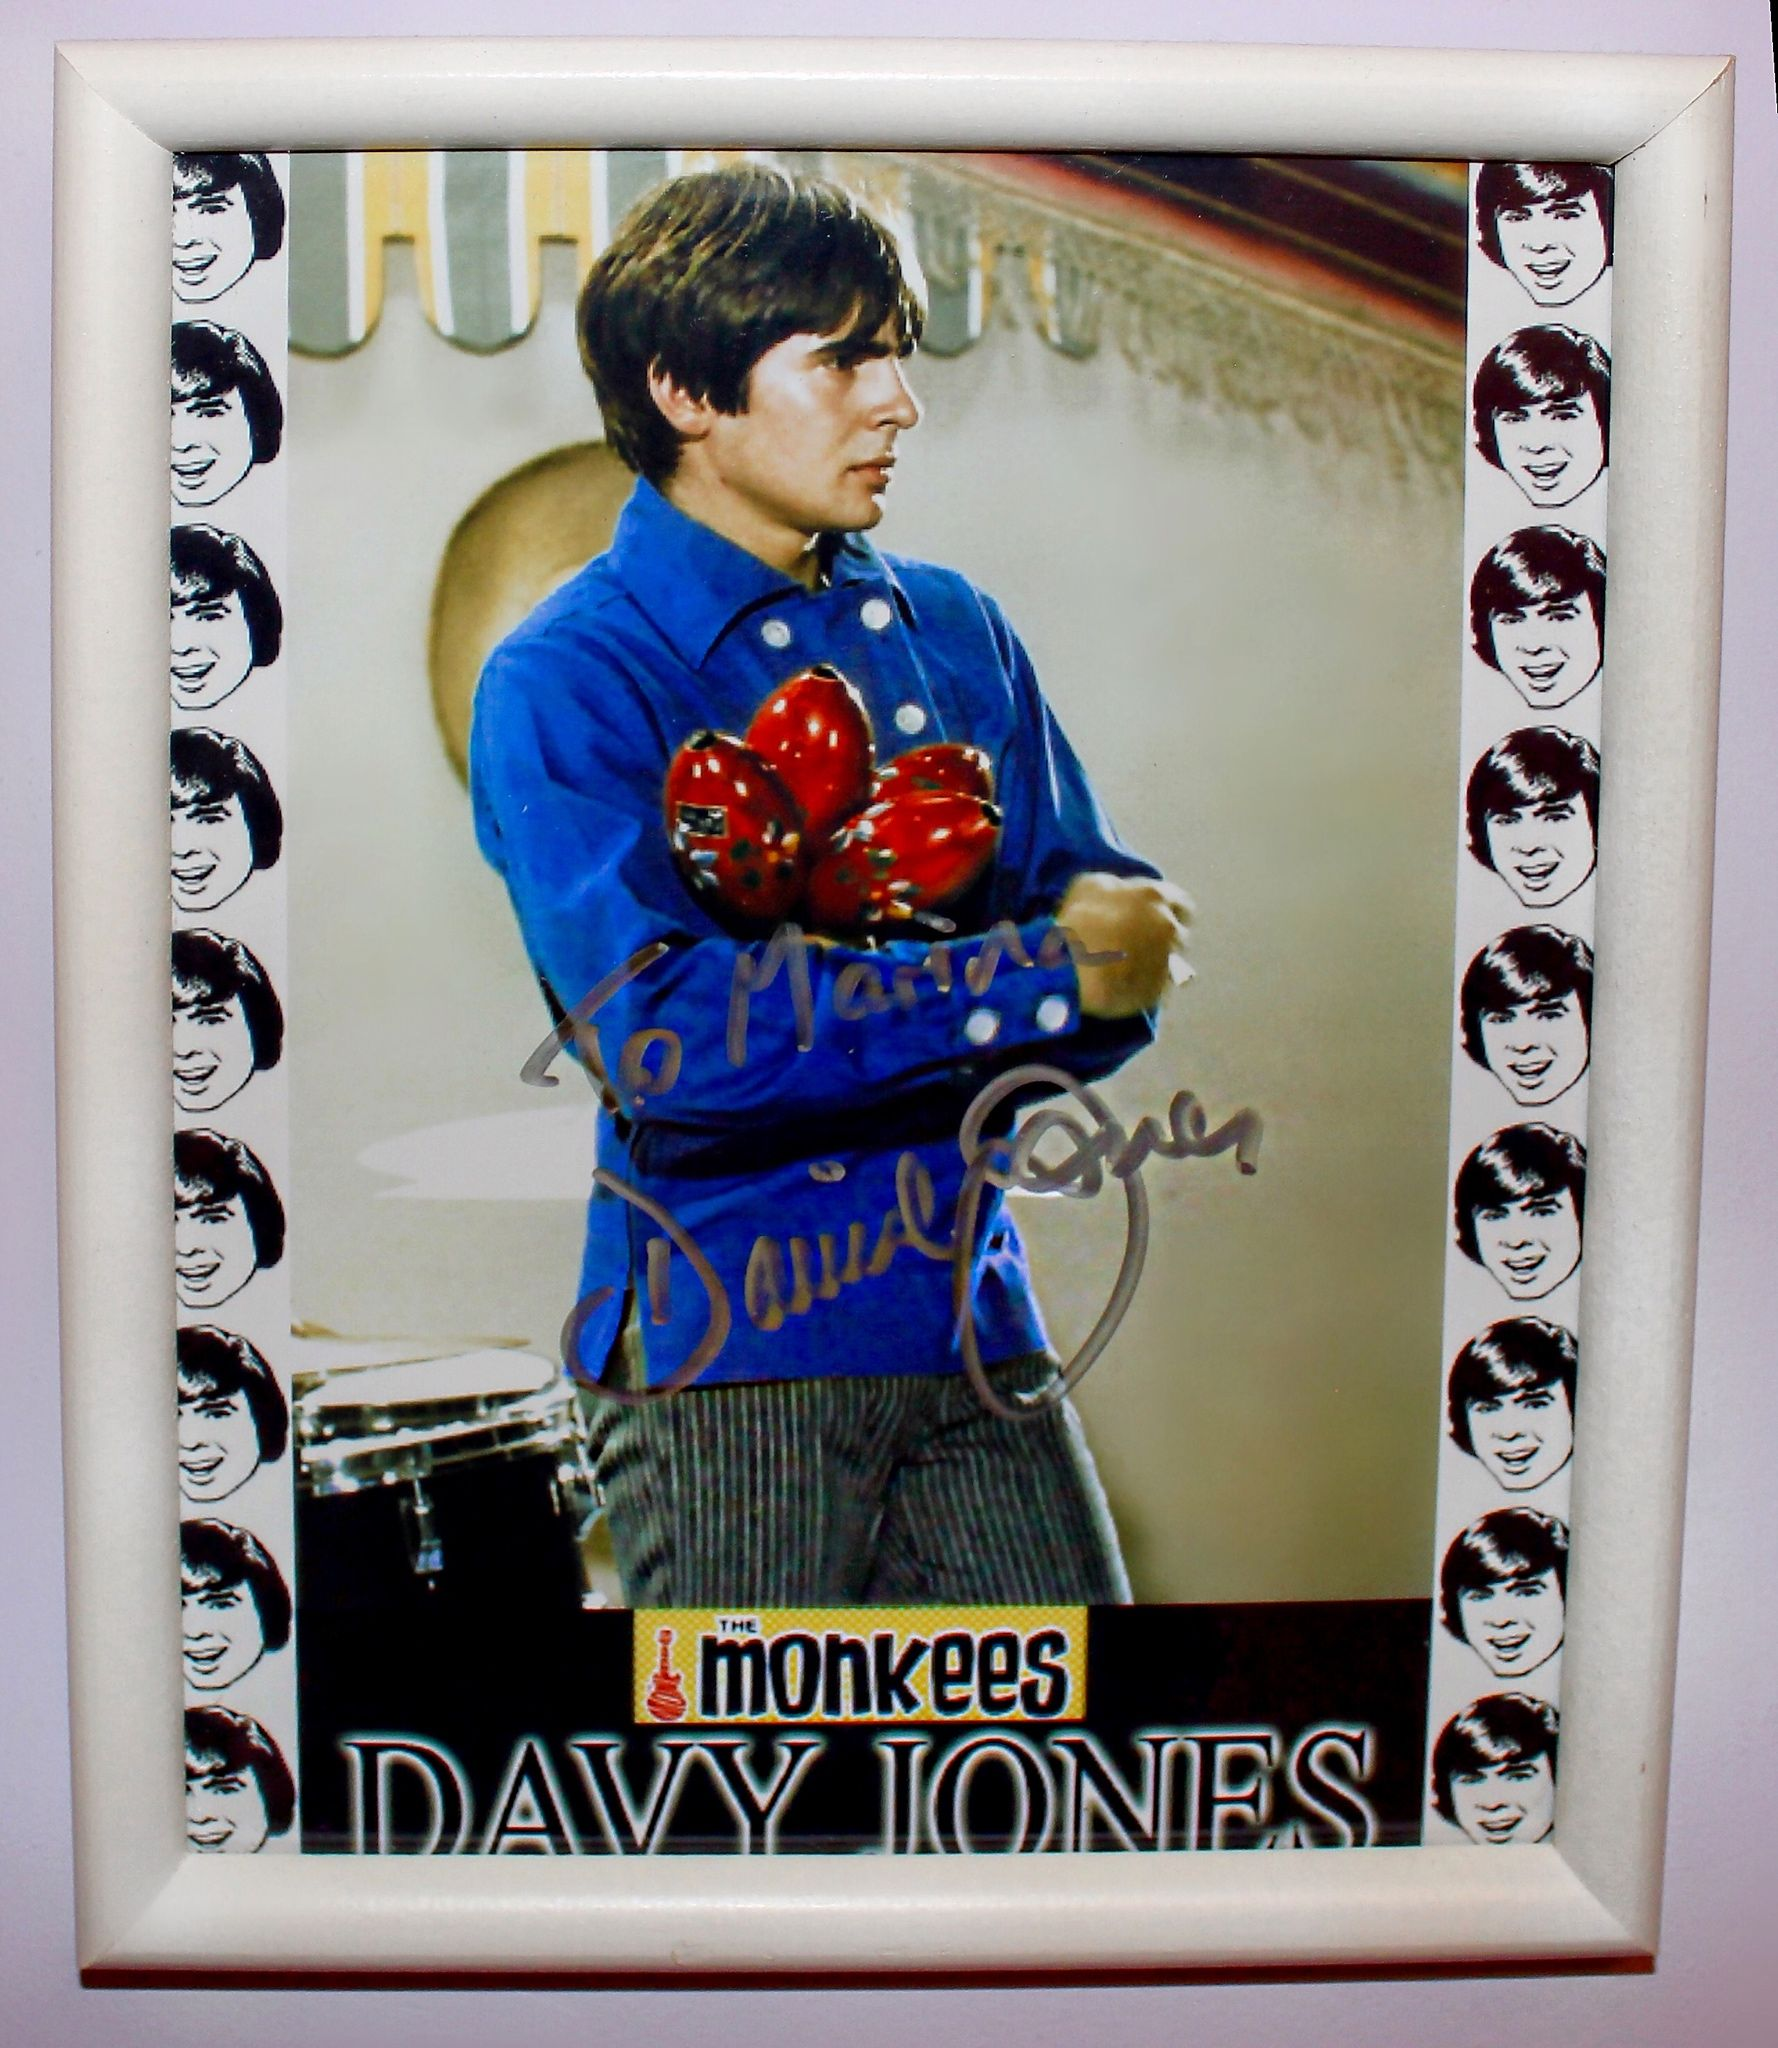 Autograph from 60's actor/singer Davy Jones from my favorite band The Monkees.